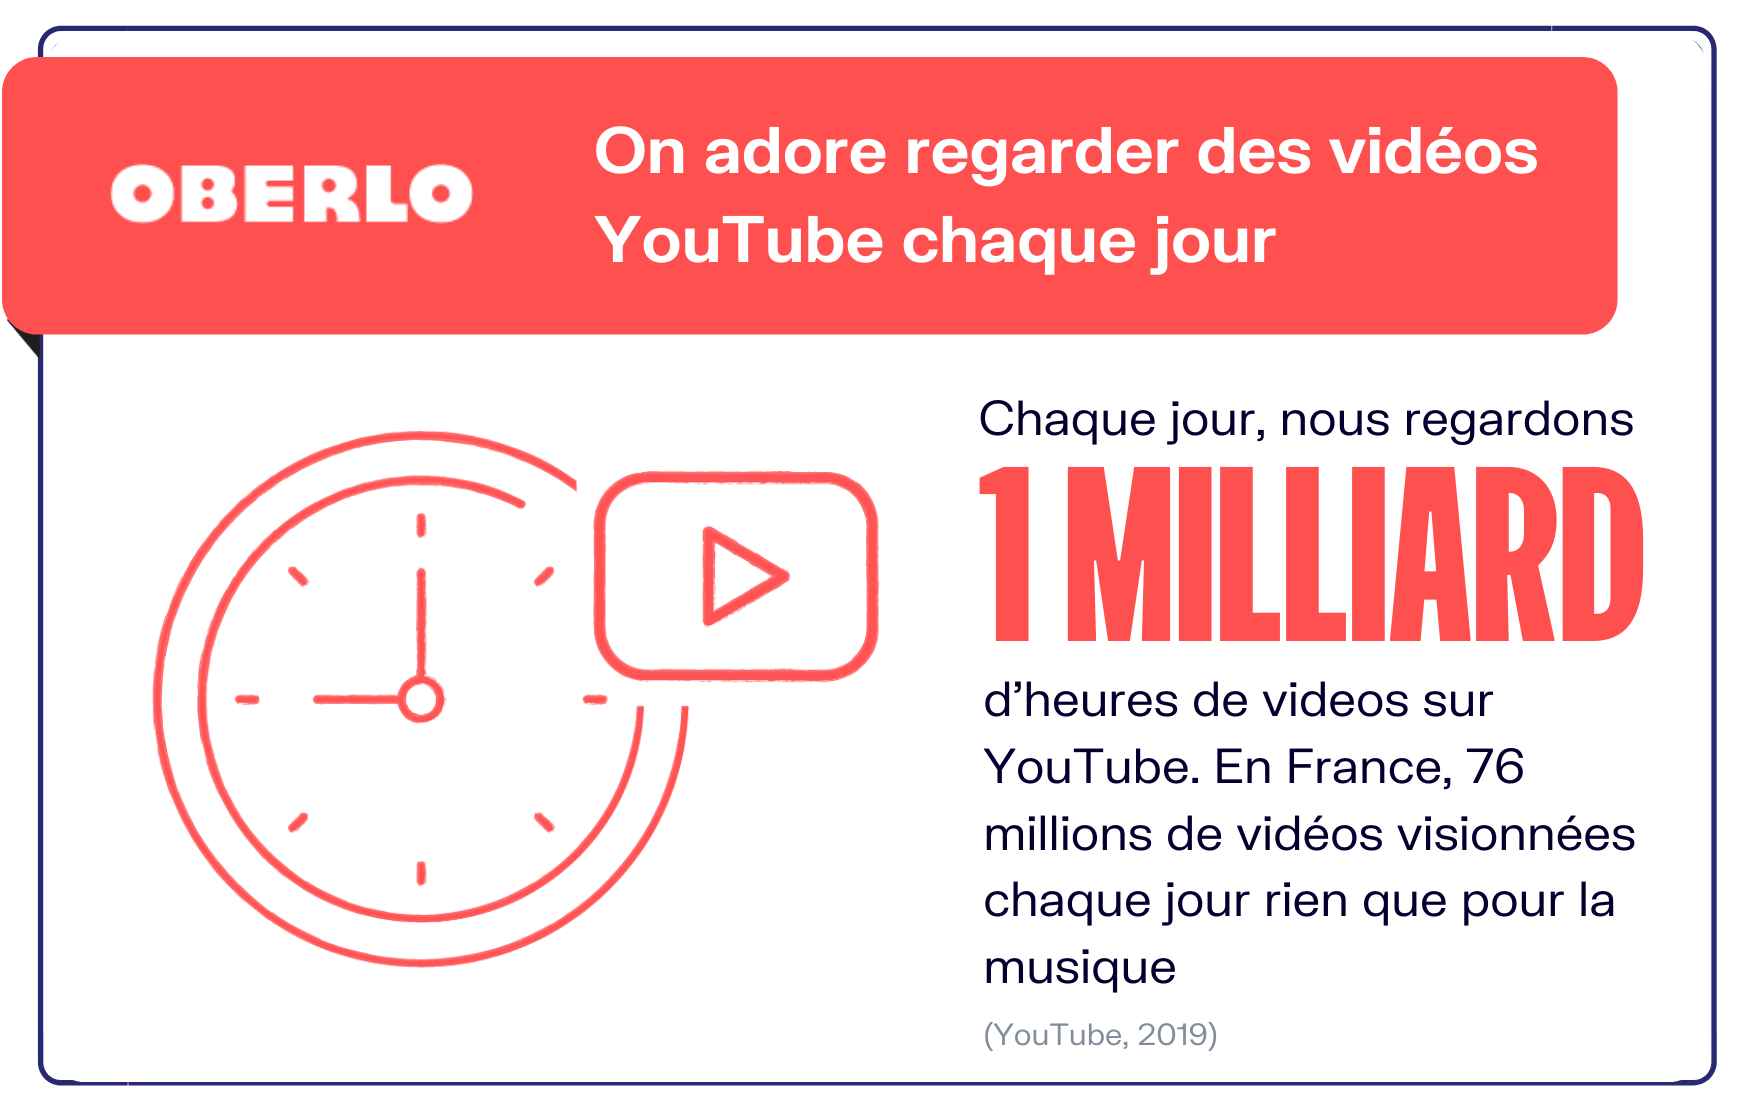 youtube statistiques ventes